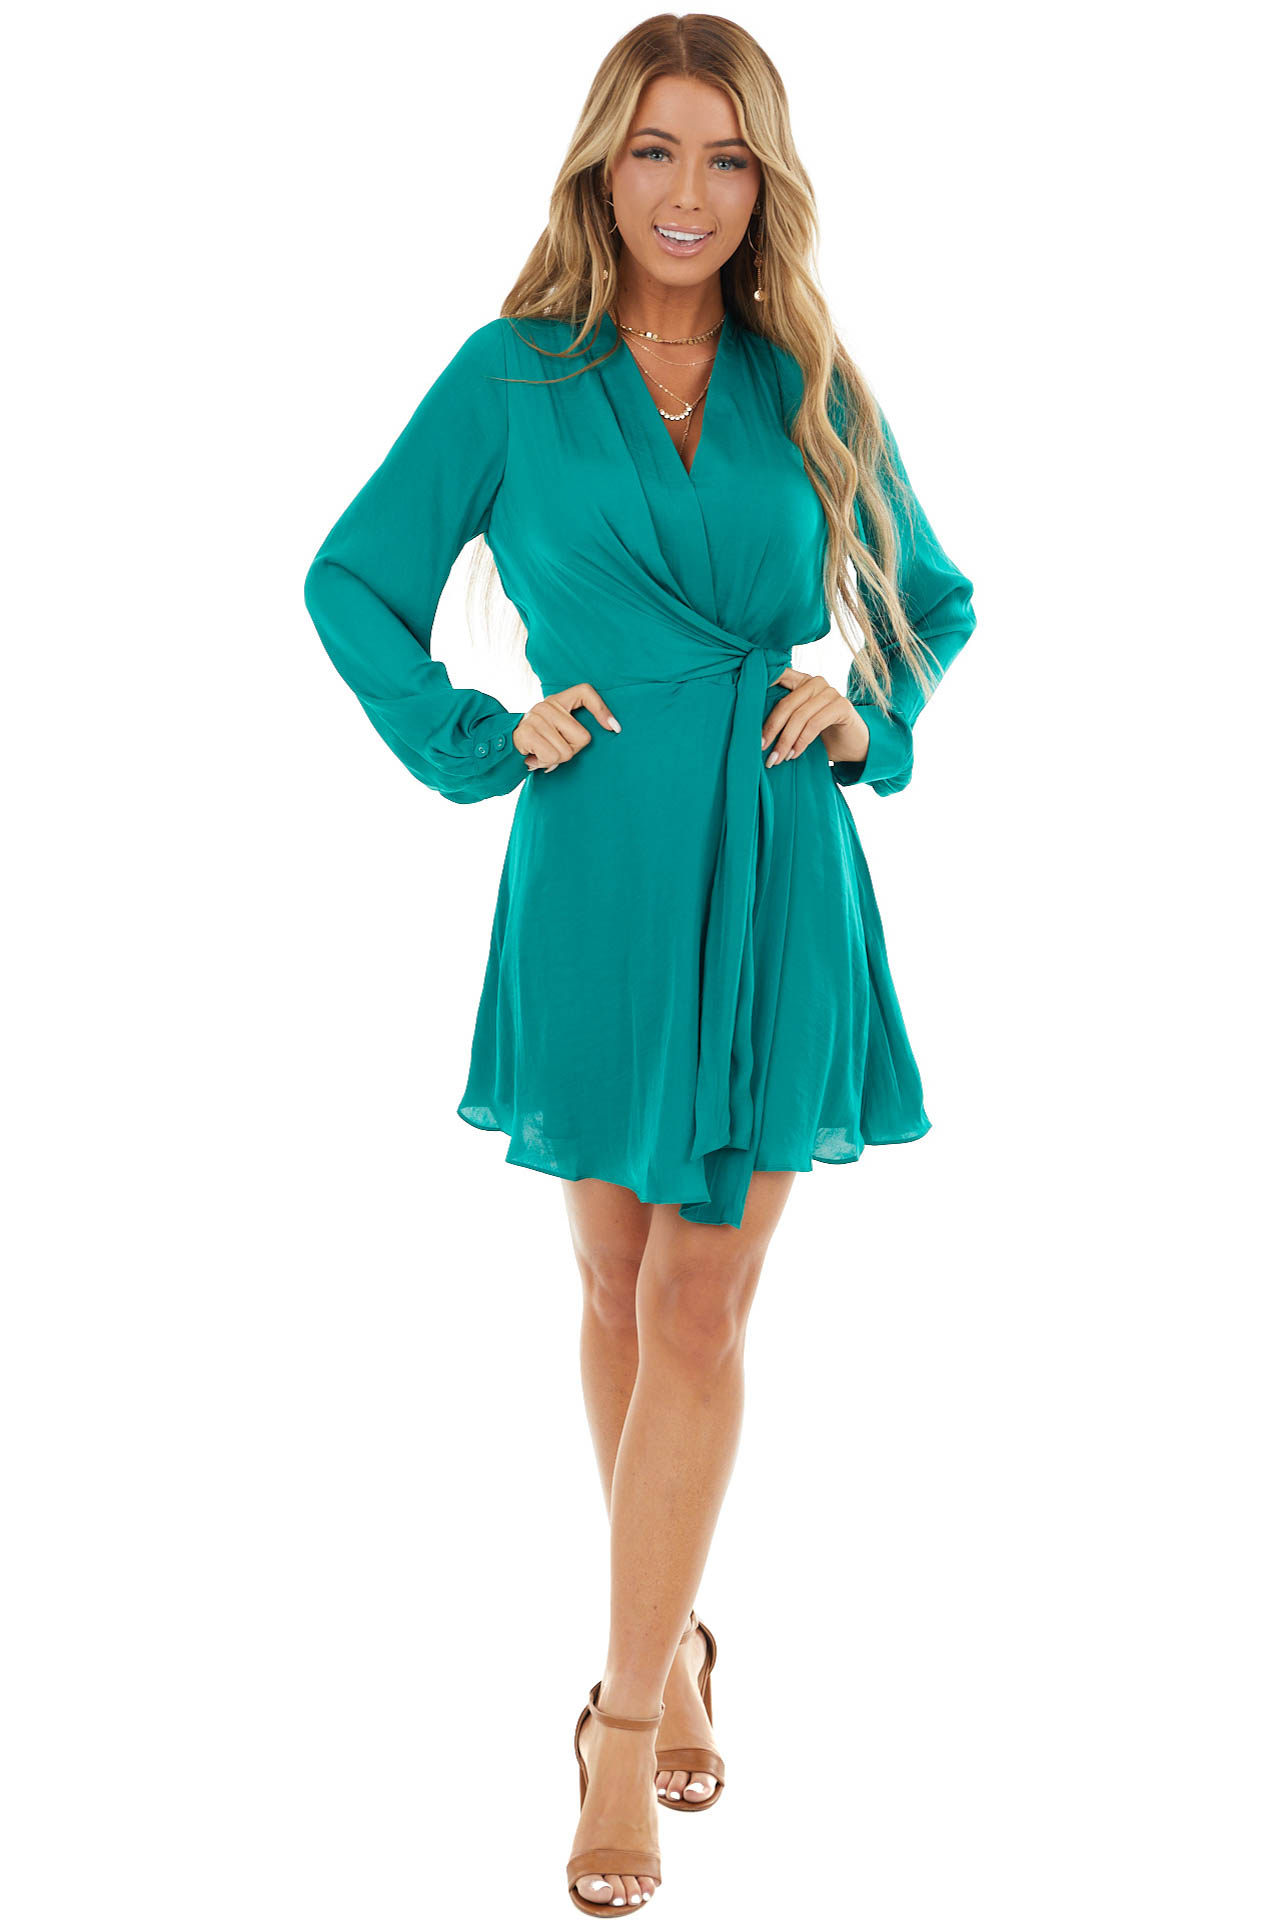 Pine Surplice Short Flare Dress with Tie detail and Buttons